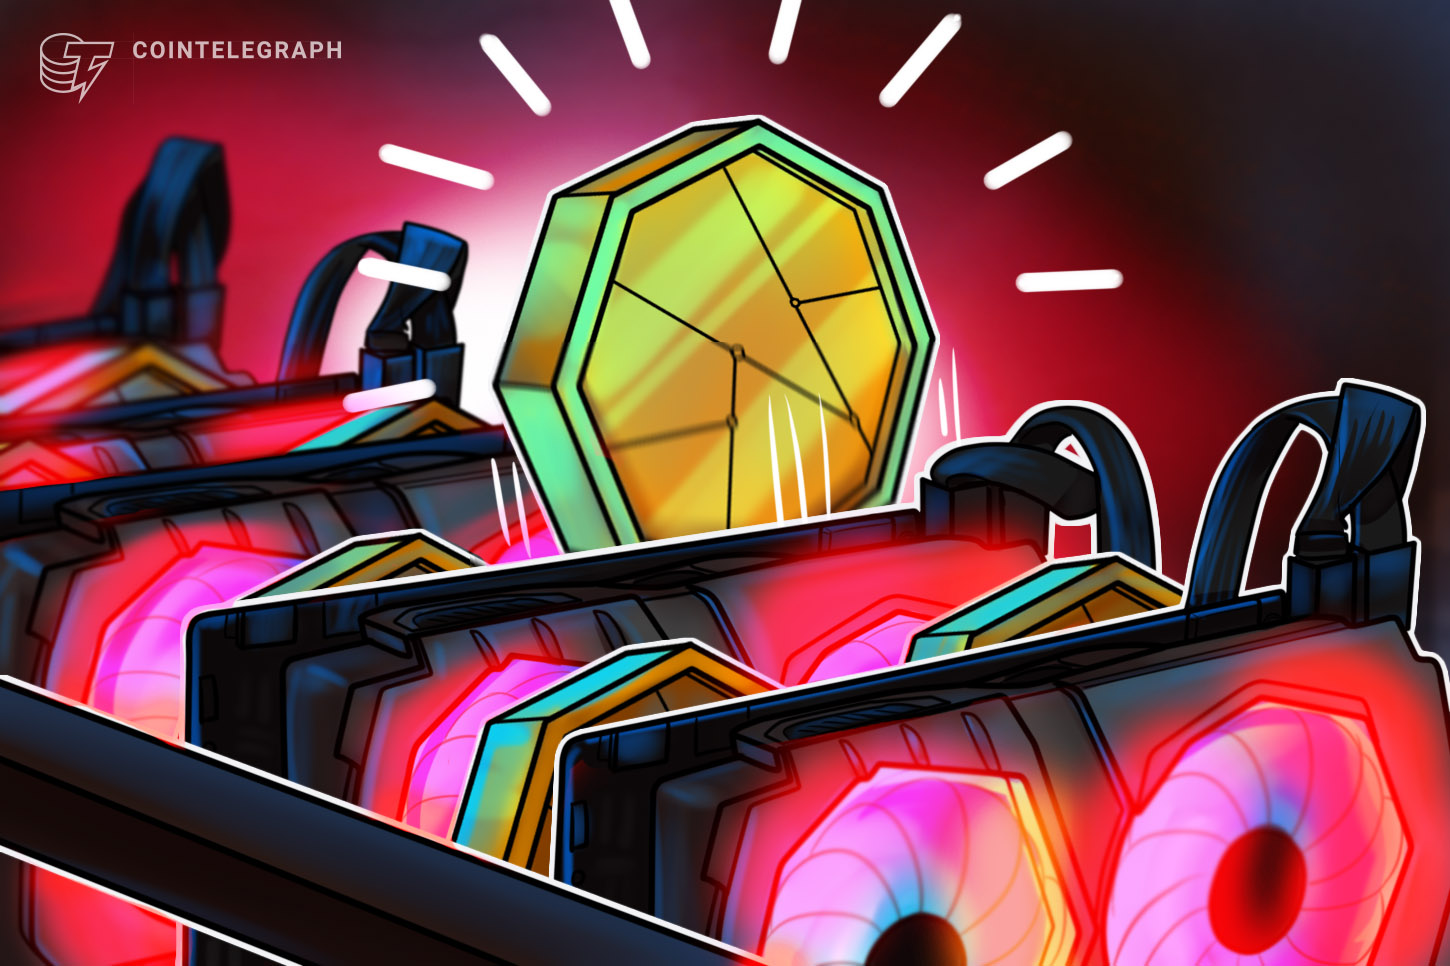 Mining software appears to have cracked Nvidia's Lite Hash Rate algorithm